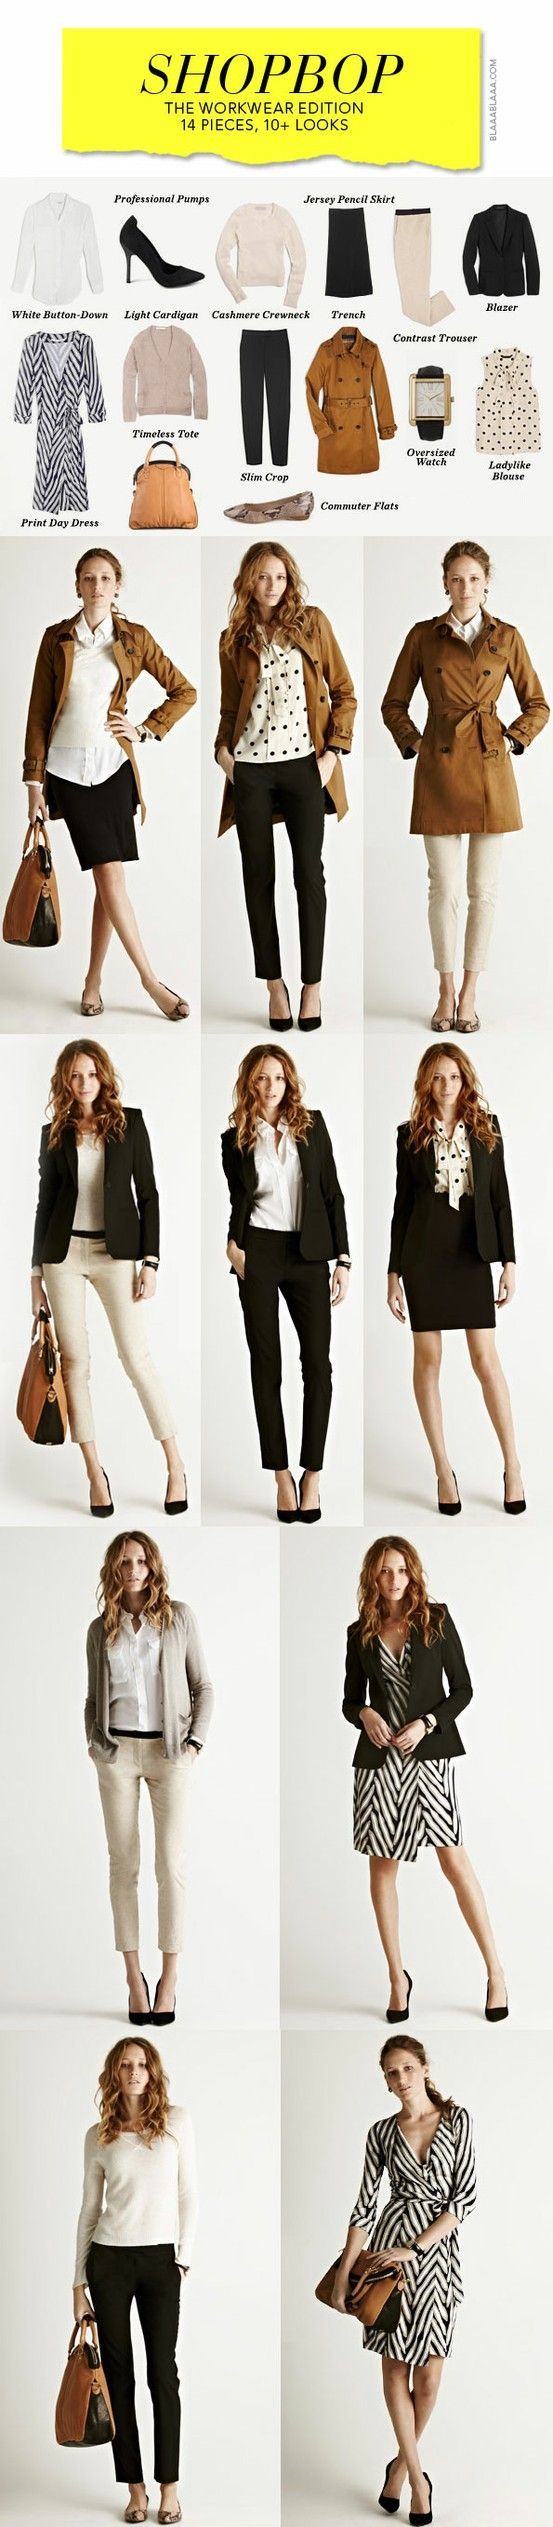 workwear outfits essentials basics for office  [Work Fashion, Business Attire, Professional Attire, Professional Wear]